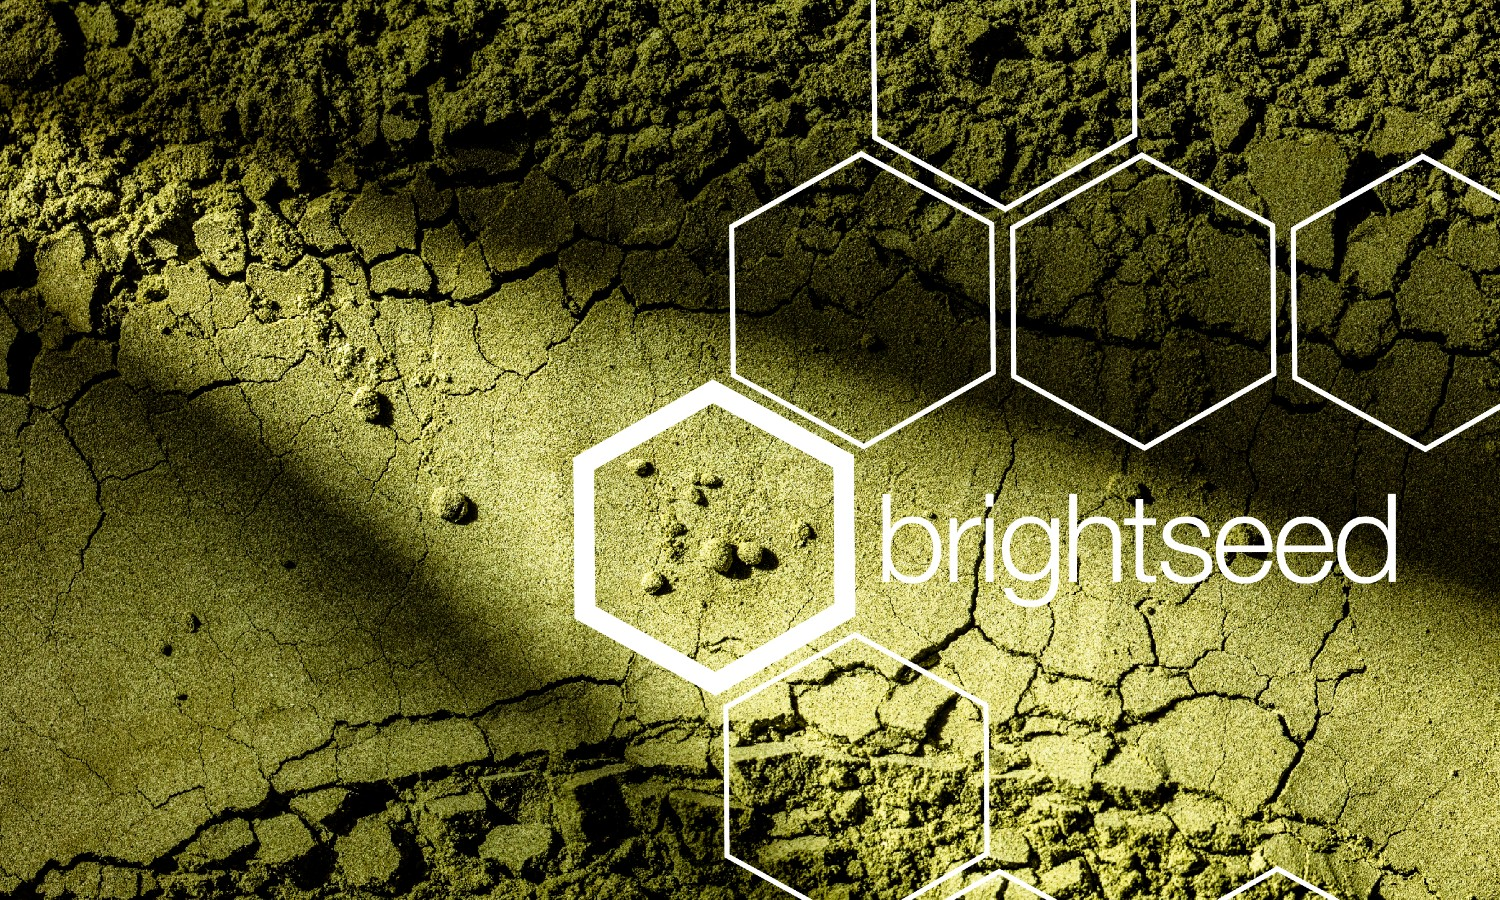 Brightseed will use artificial intelligence to identify unknown compounds in soy and predict previously undiscovered health benefits in plants.